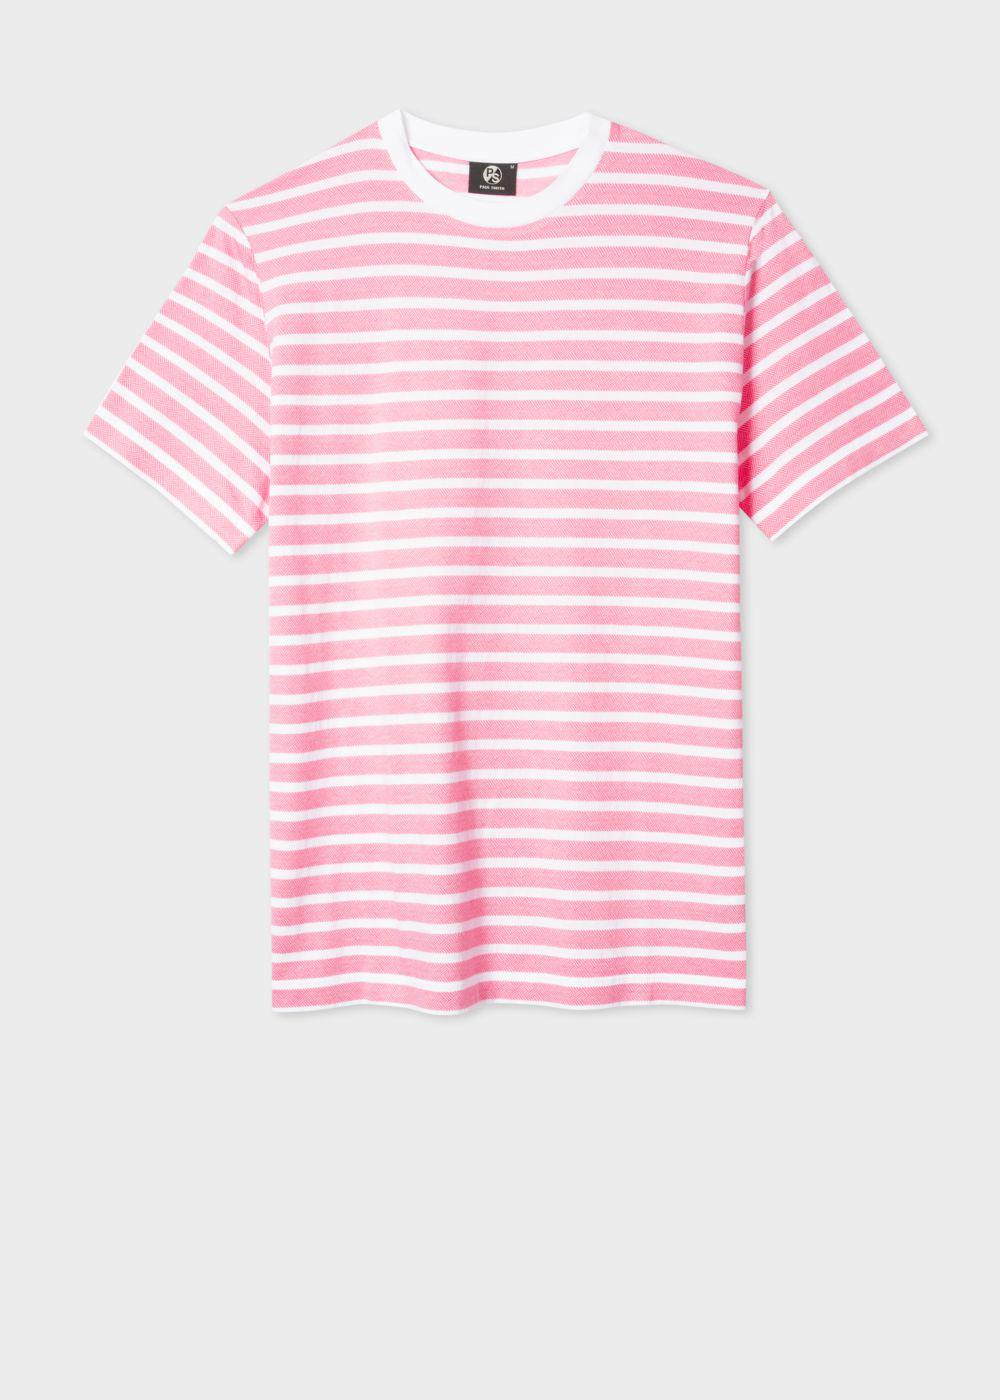 Paul Smith Men 39 S Pink And White 39 Zig Zag 39 Stripe T Shirt